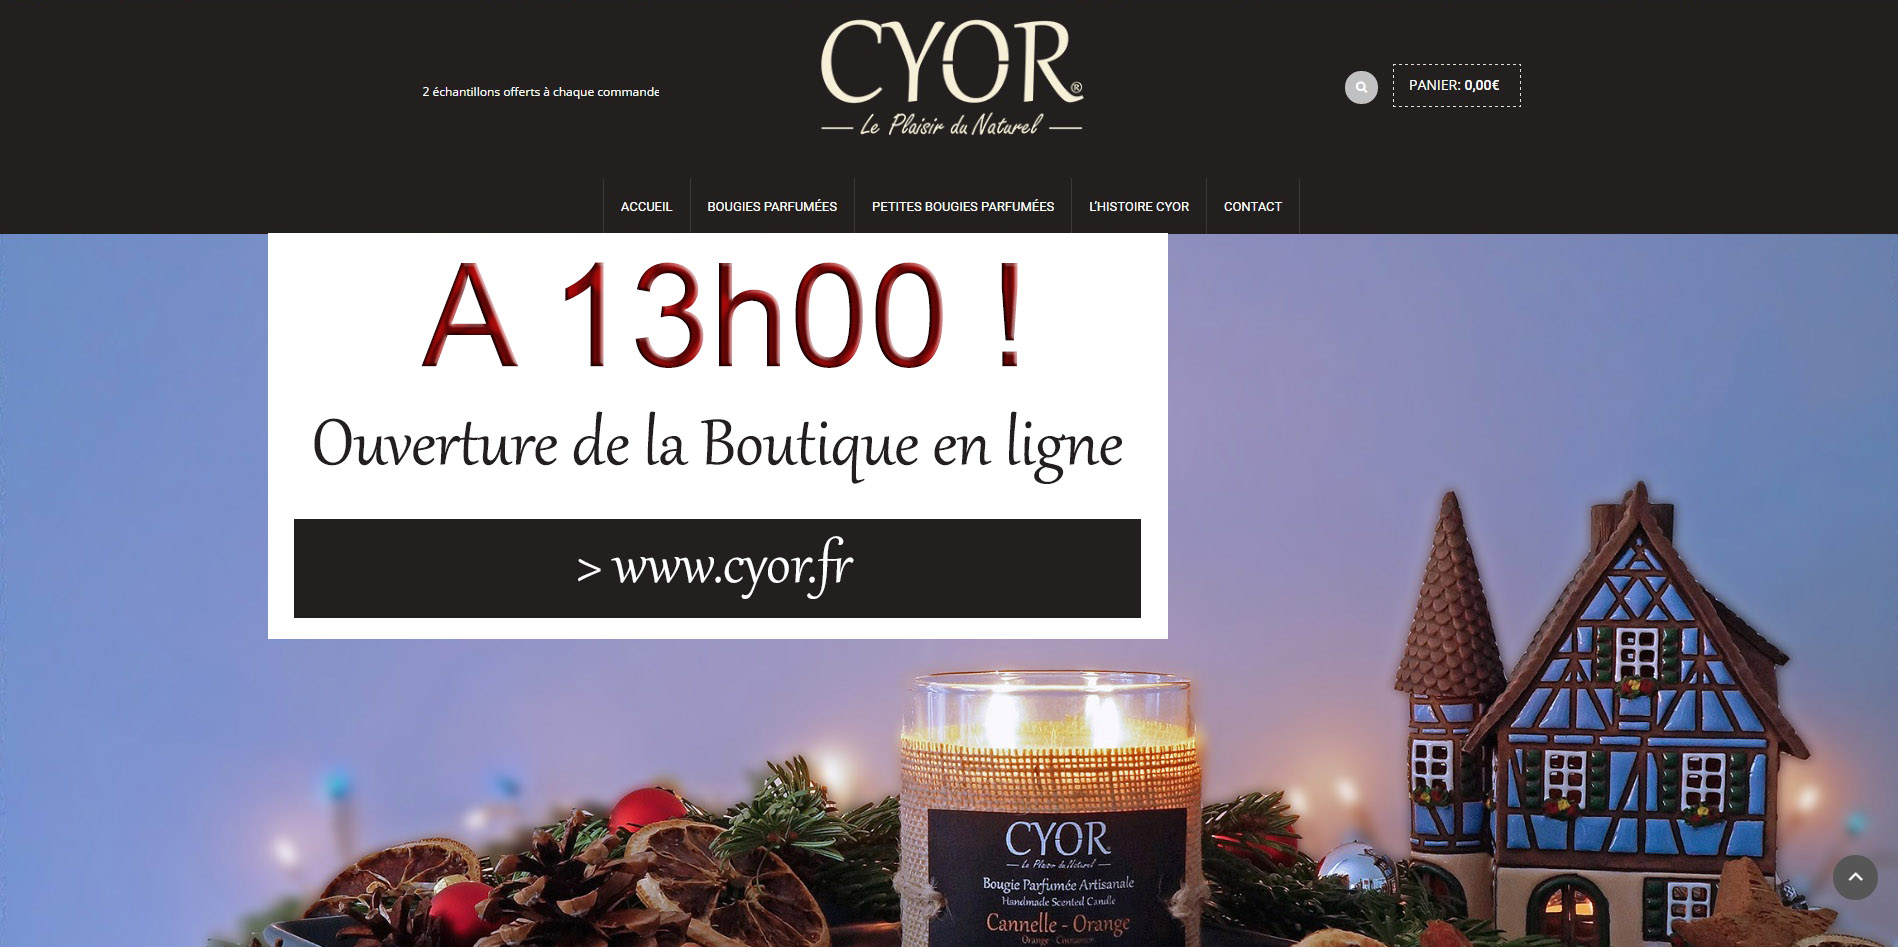 lancement boutique en ligne cyor cyor collection de bougies parfum es. Black Bedroom Furniture Sets. Home Design Ideas